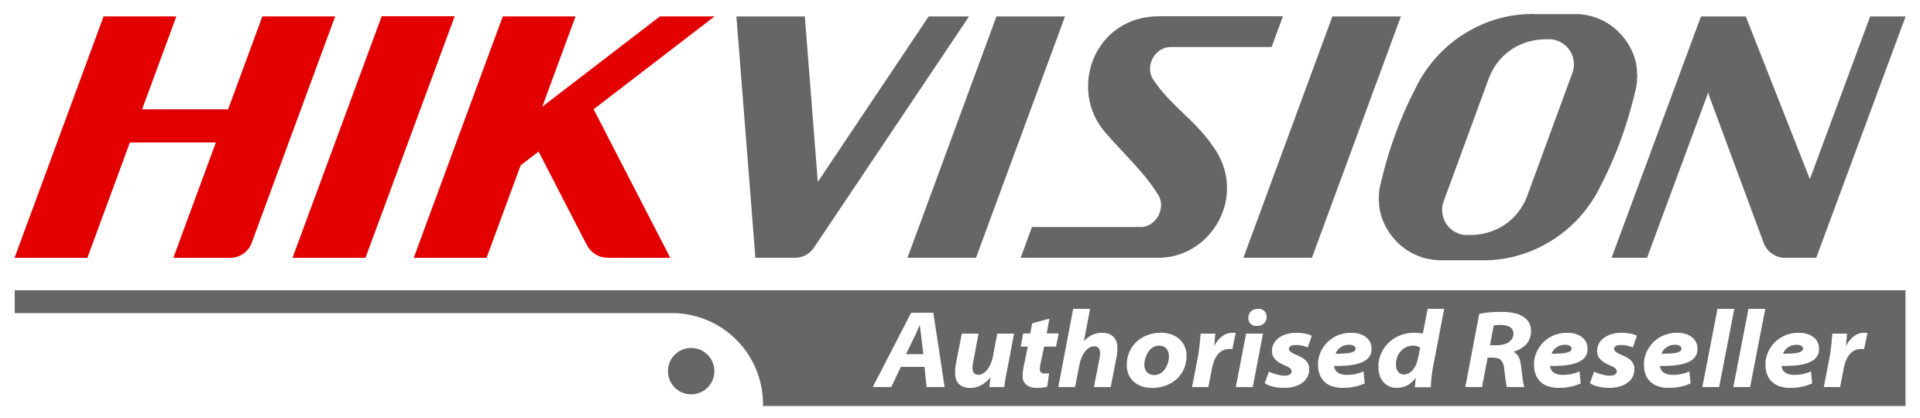 Hikvision_Logo_-_Authorized_Reseller